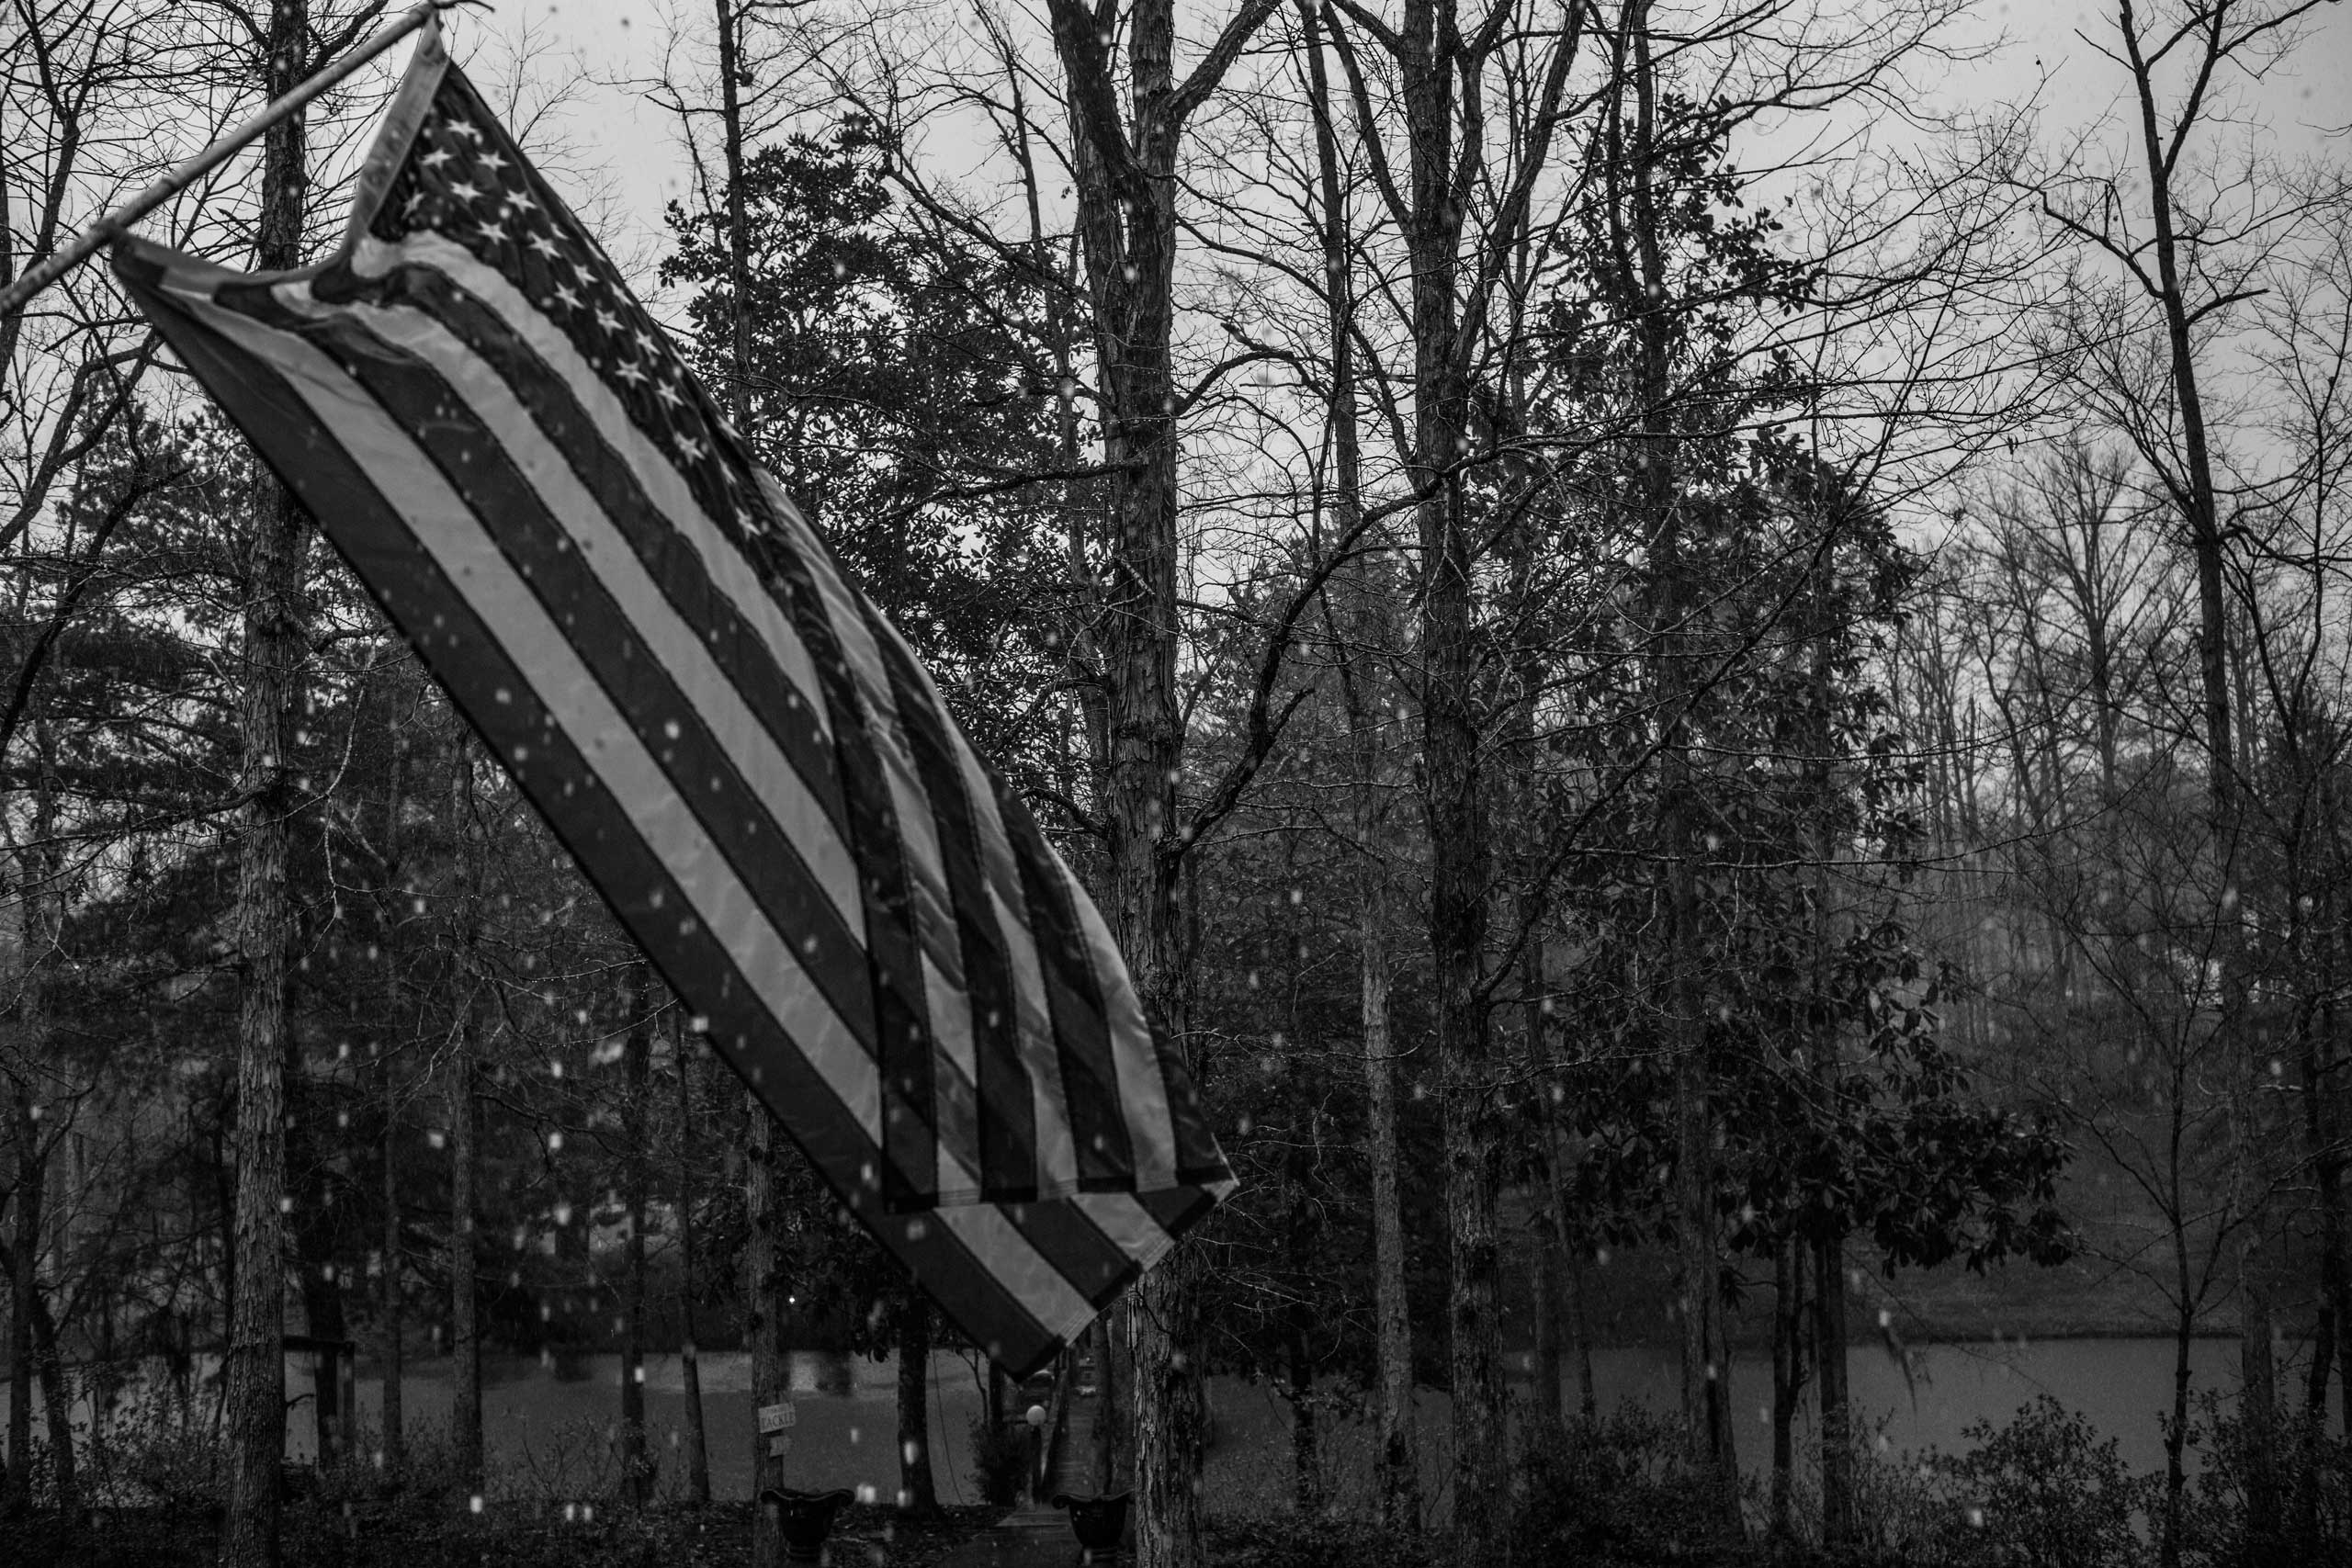 Shawn Bleeker, Ozark, Ala.                                                              A flag hangs in a rain storm from the front porch of Shawn Bleeker's former home in Ozark, Alabama.